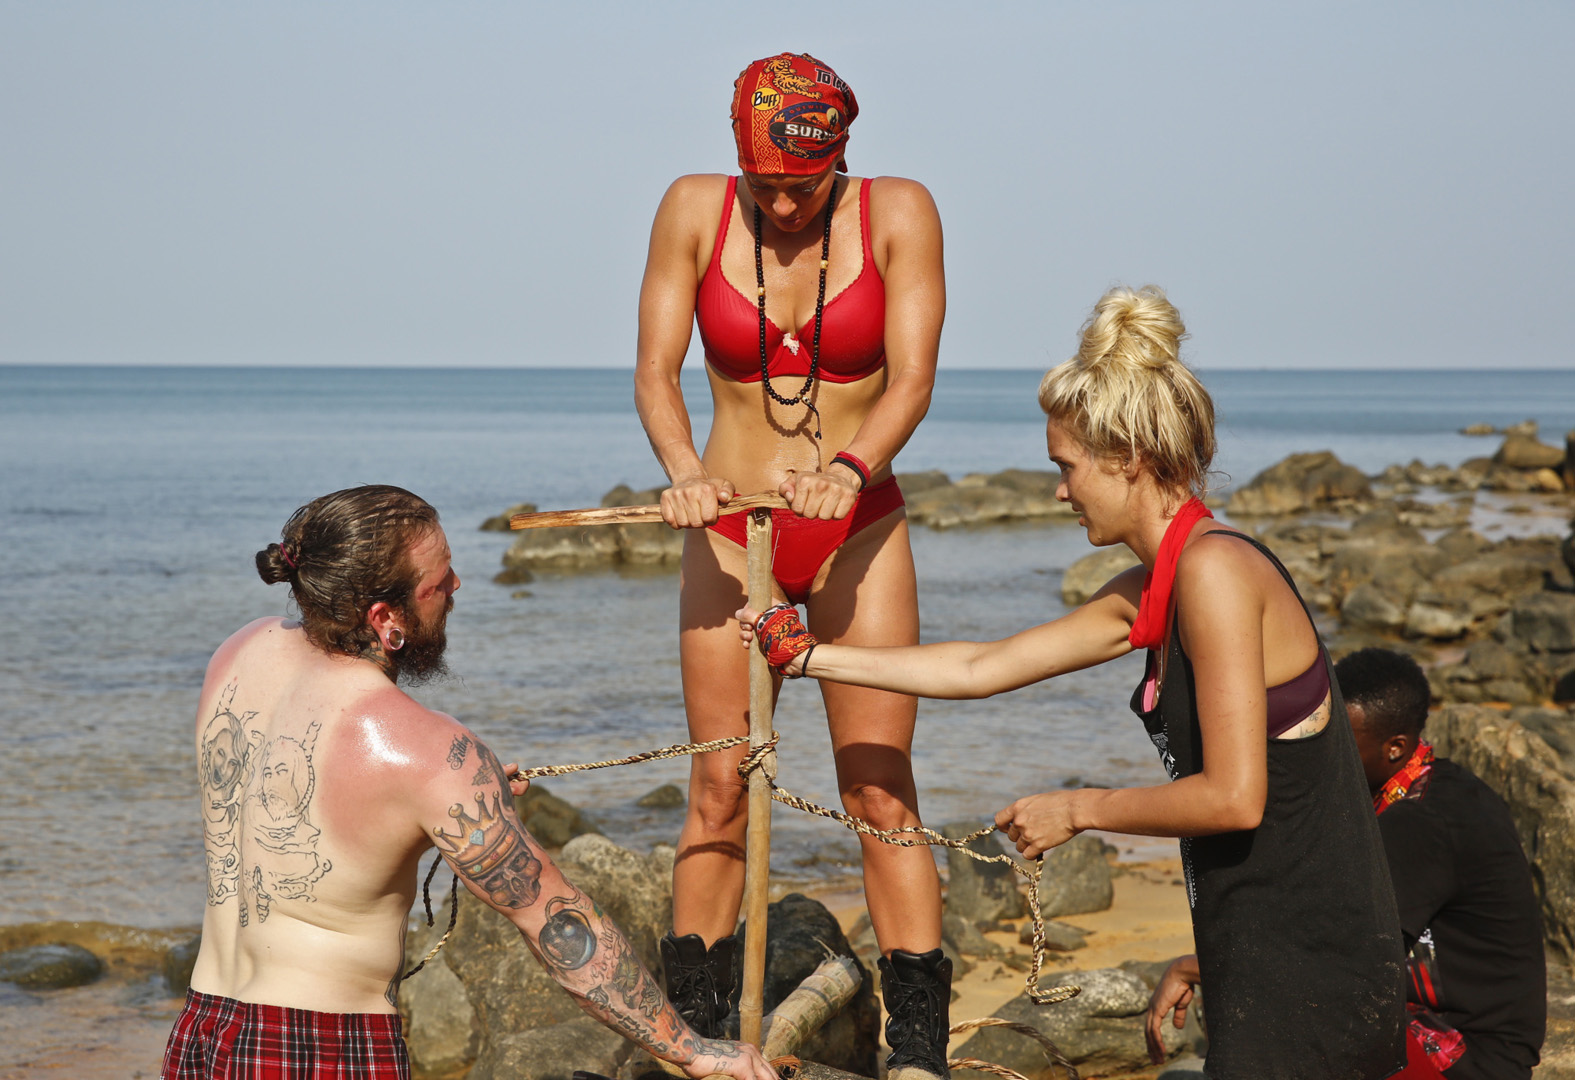 Kyle, Jennifer, and Alecia battle the beating rays during their first day on Survivor.